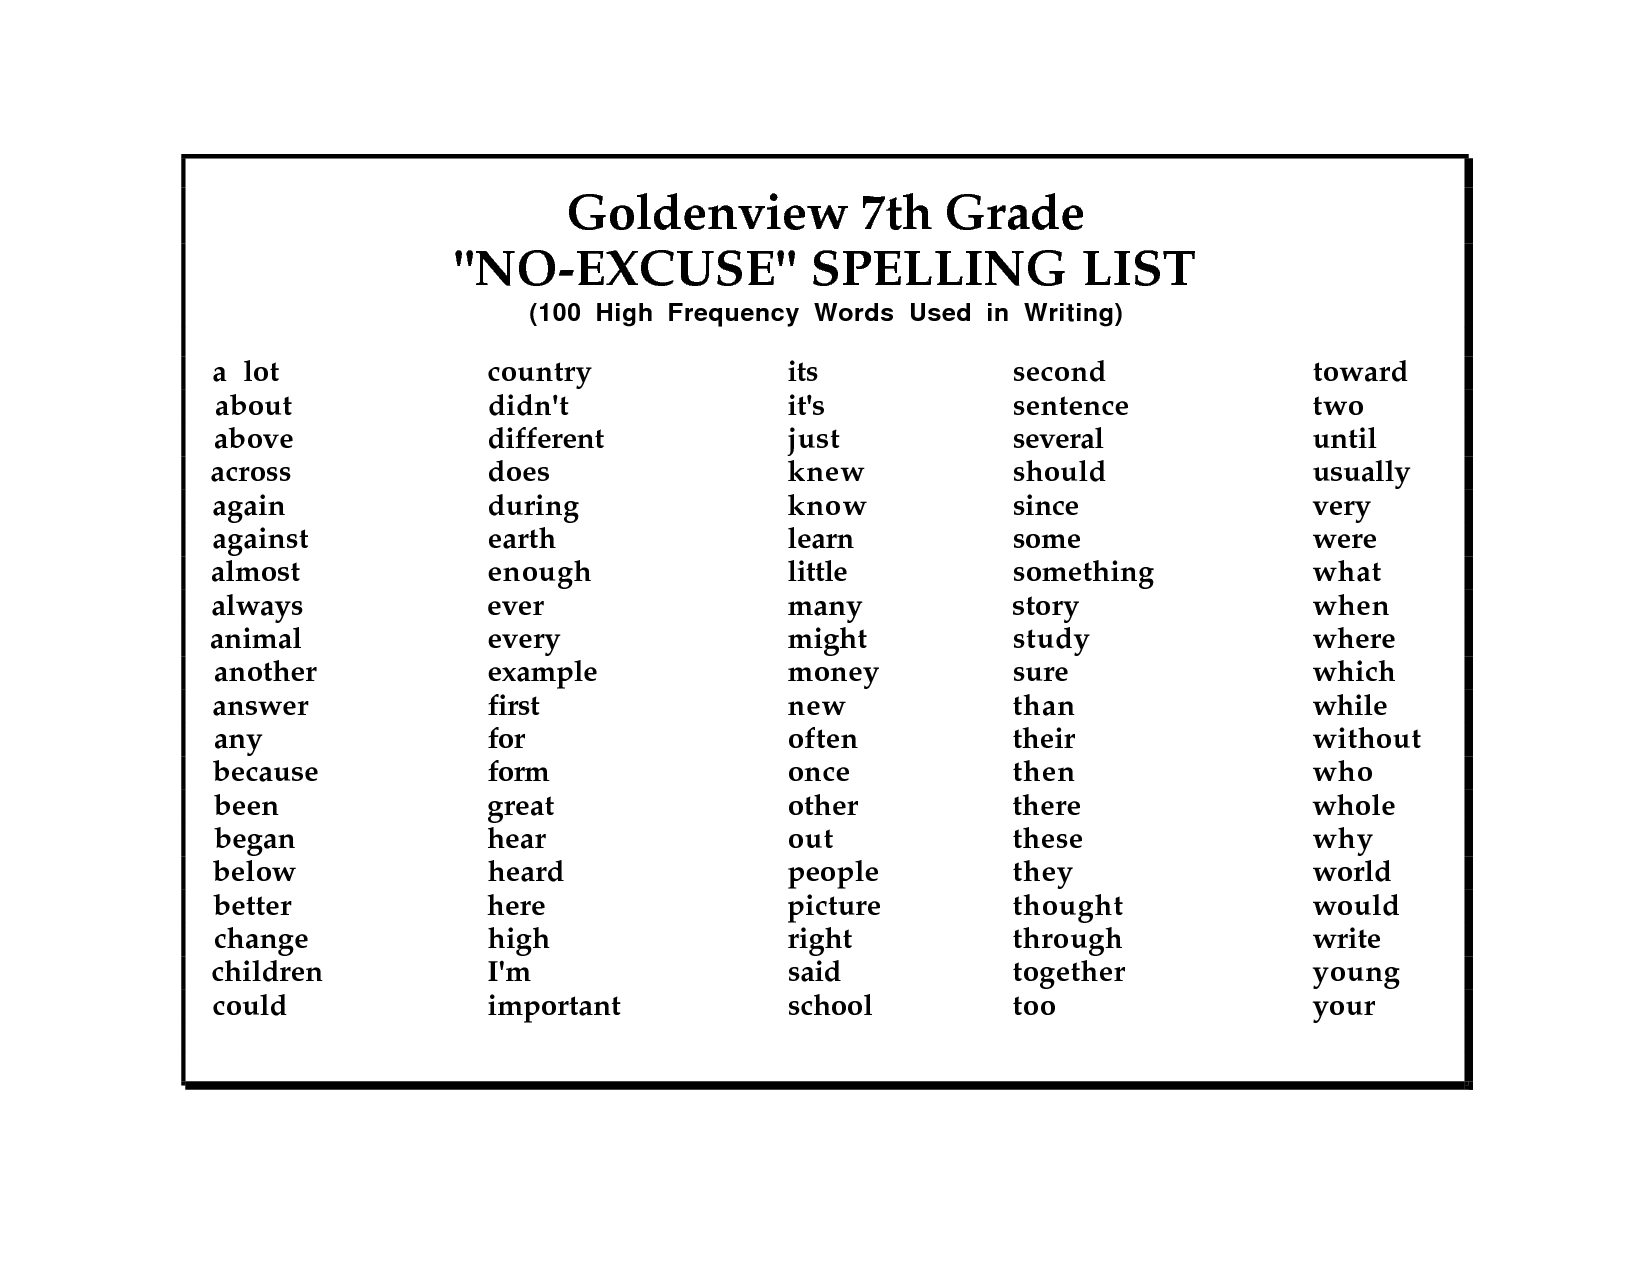 medium resolution of 8th Grade Sight Words List   13 Best Images of Vocabulary Worksheets For  3rd Grade - 3rd Grade Language Arts…   Spelling words list